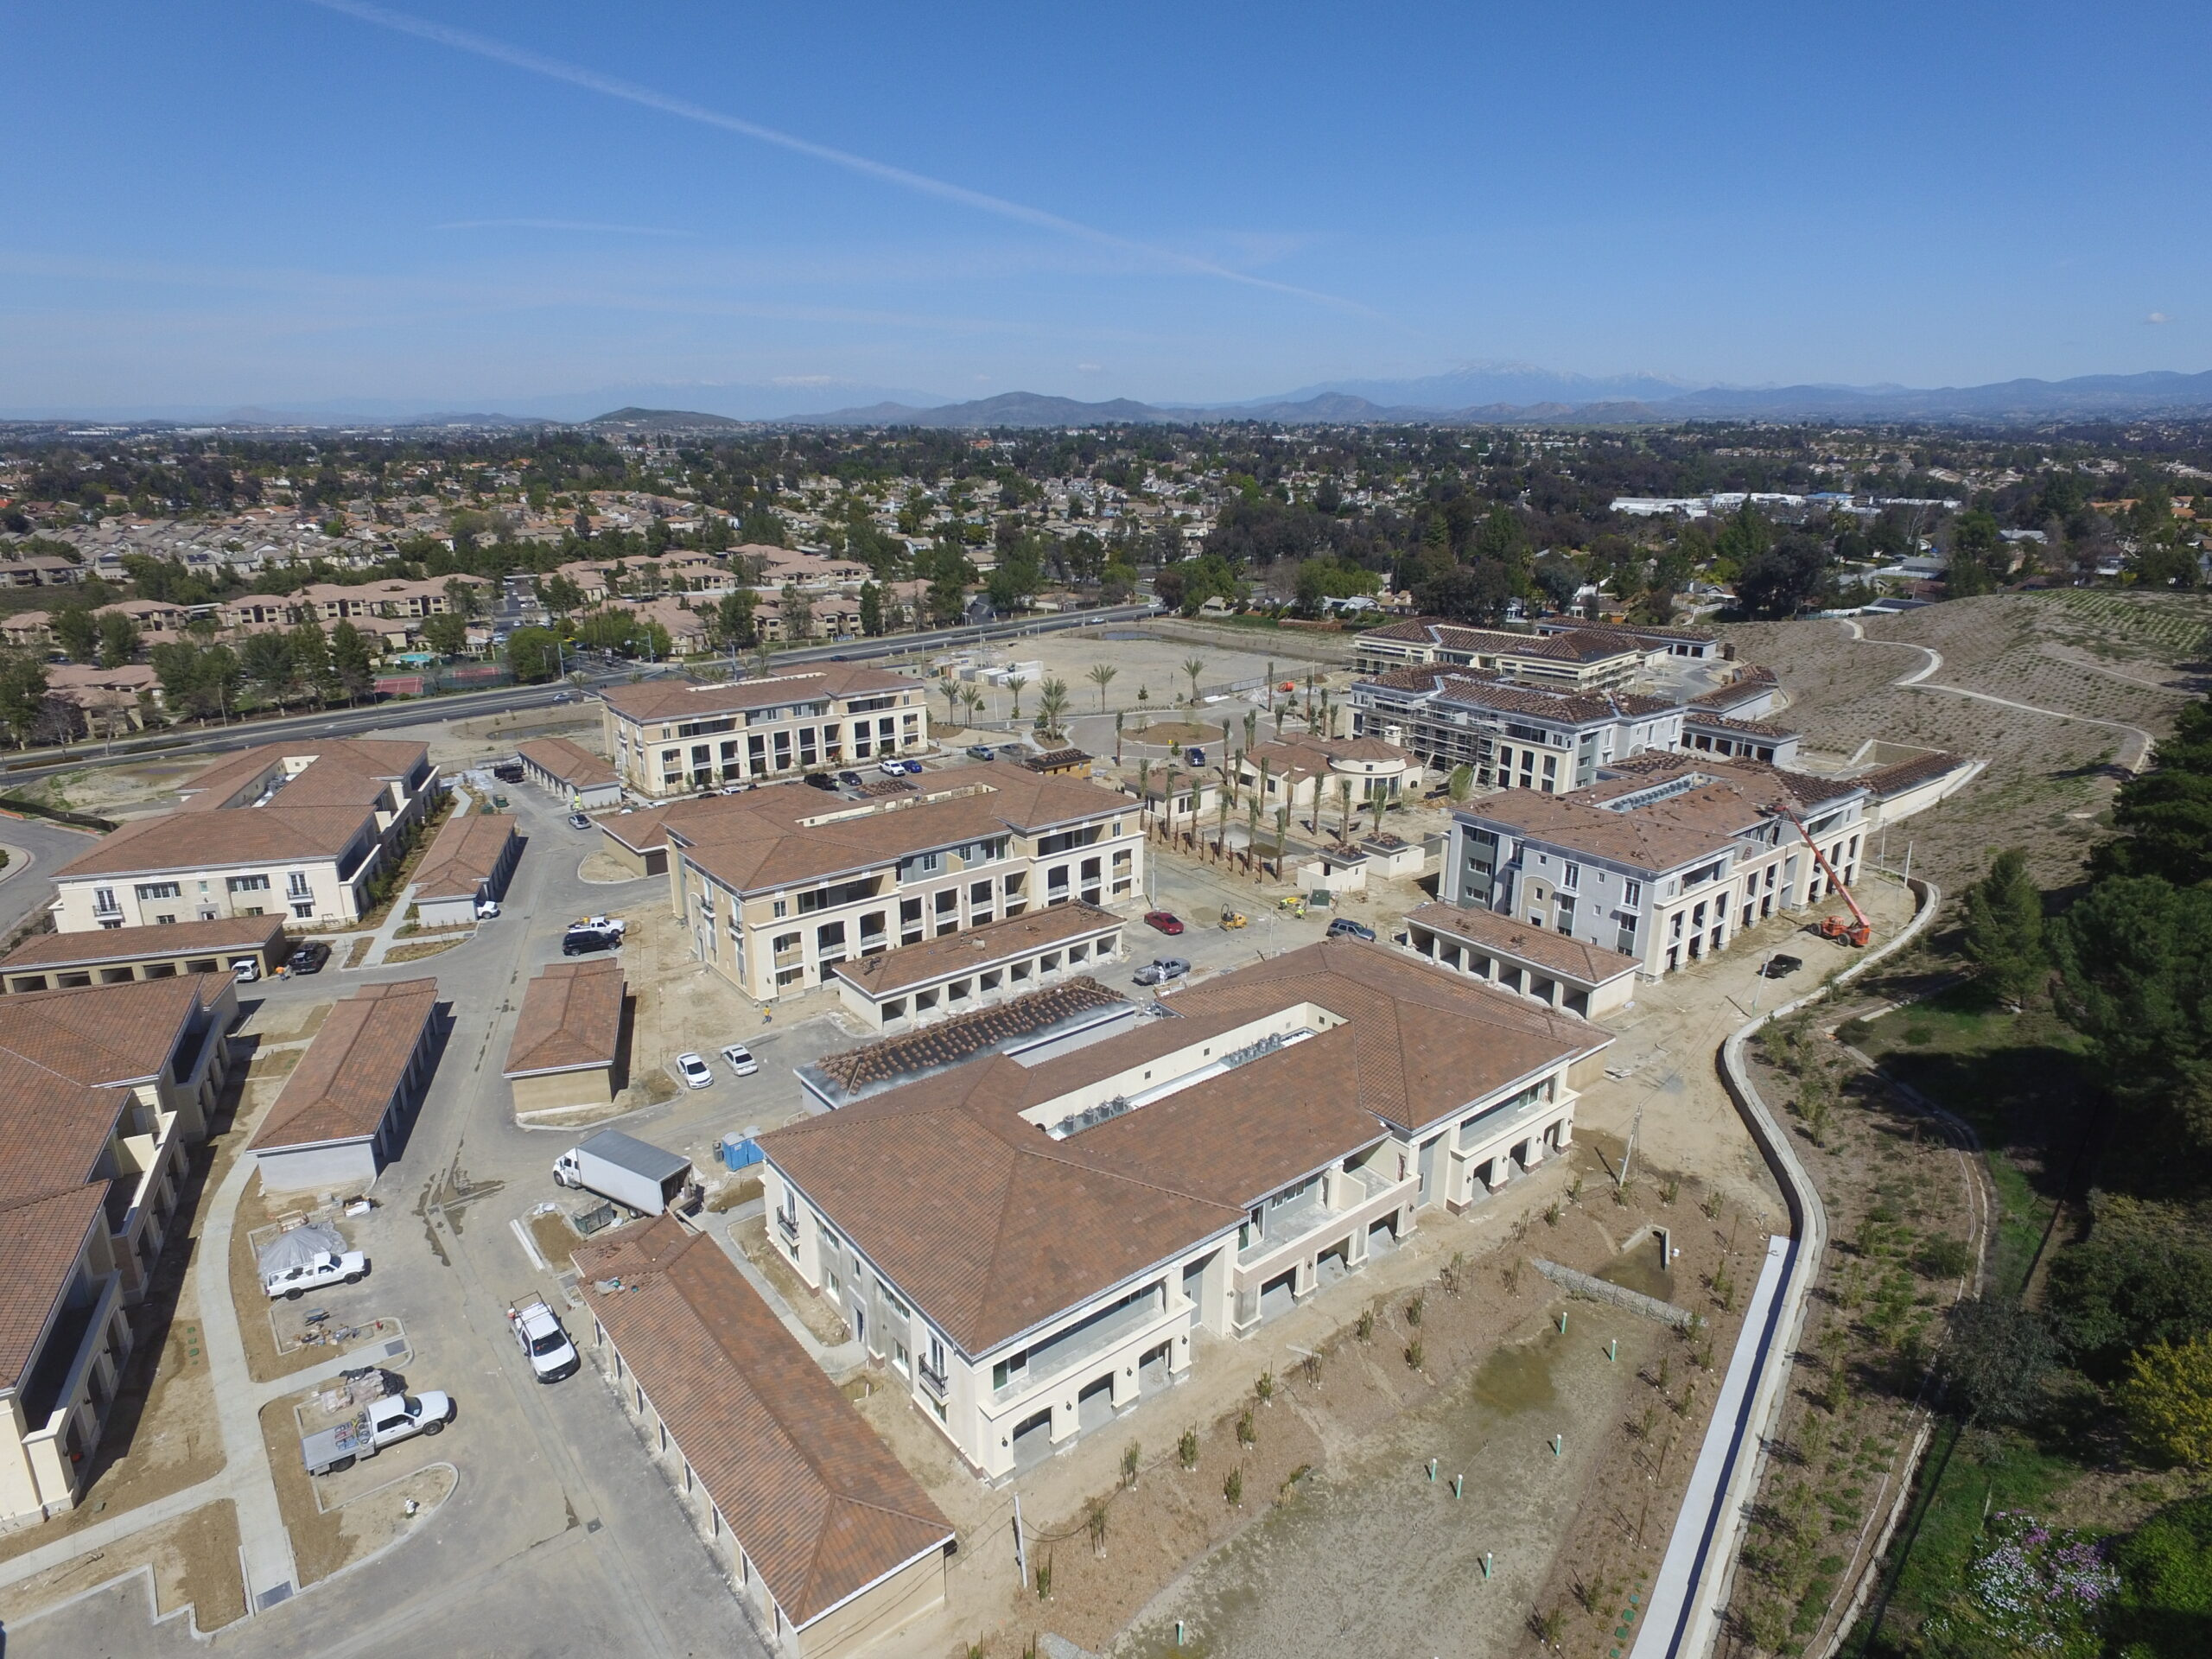 Pacific West Development Completes Stucco / Close to Complete with Leasing Office and First Buildings at Temecula Village Apartments